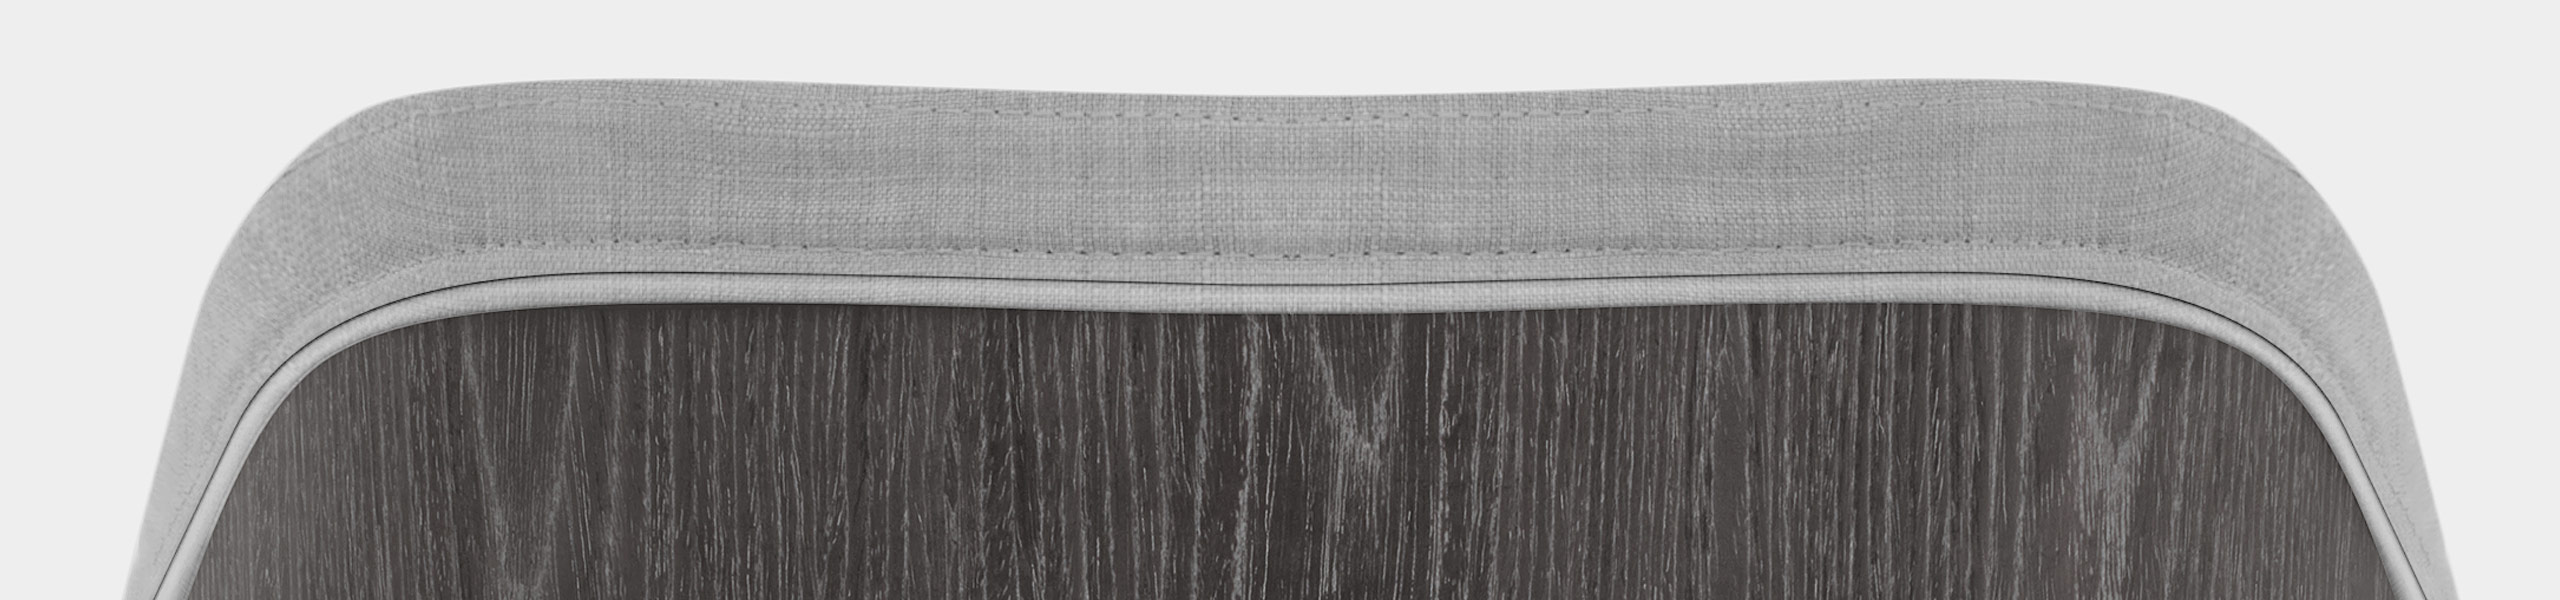 Adele Wooden Stool Grey Fabric Video Banner